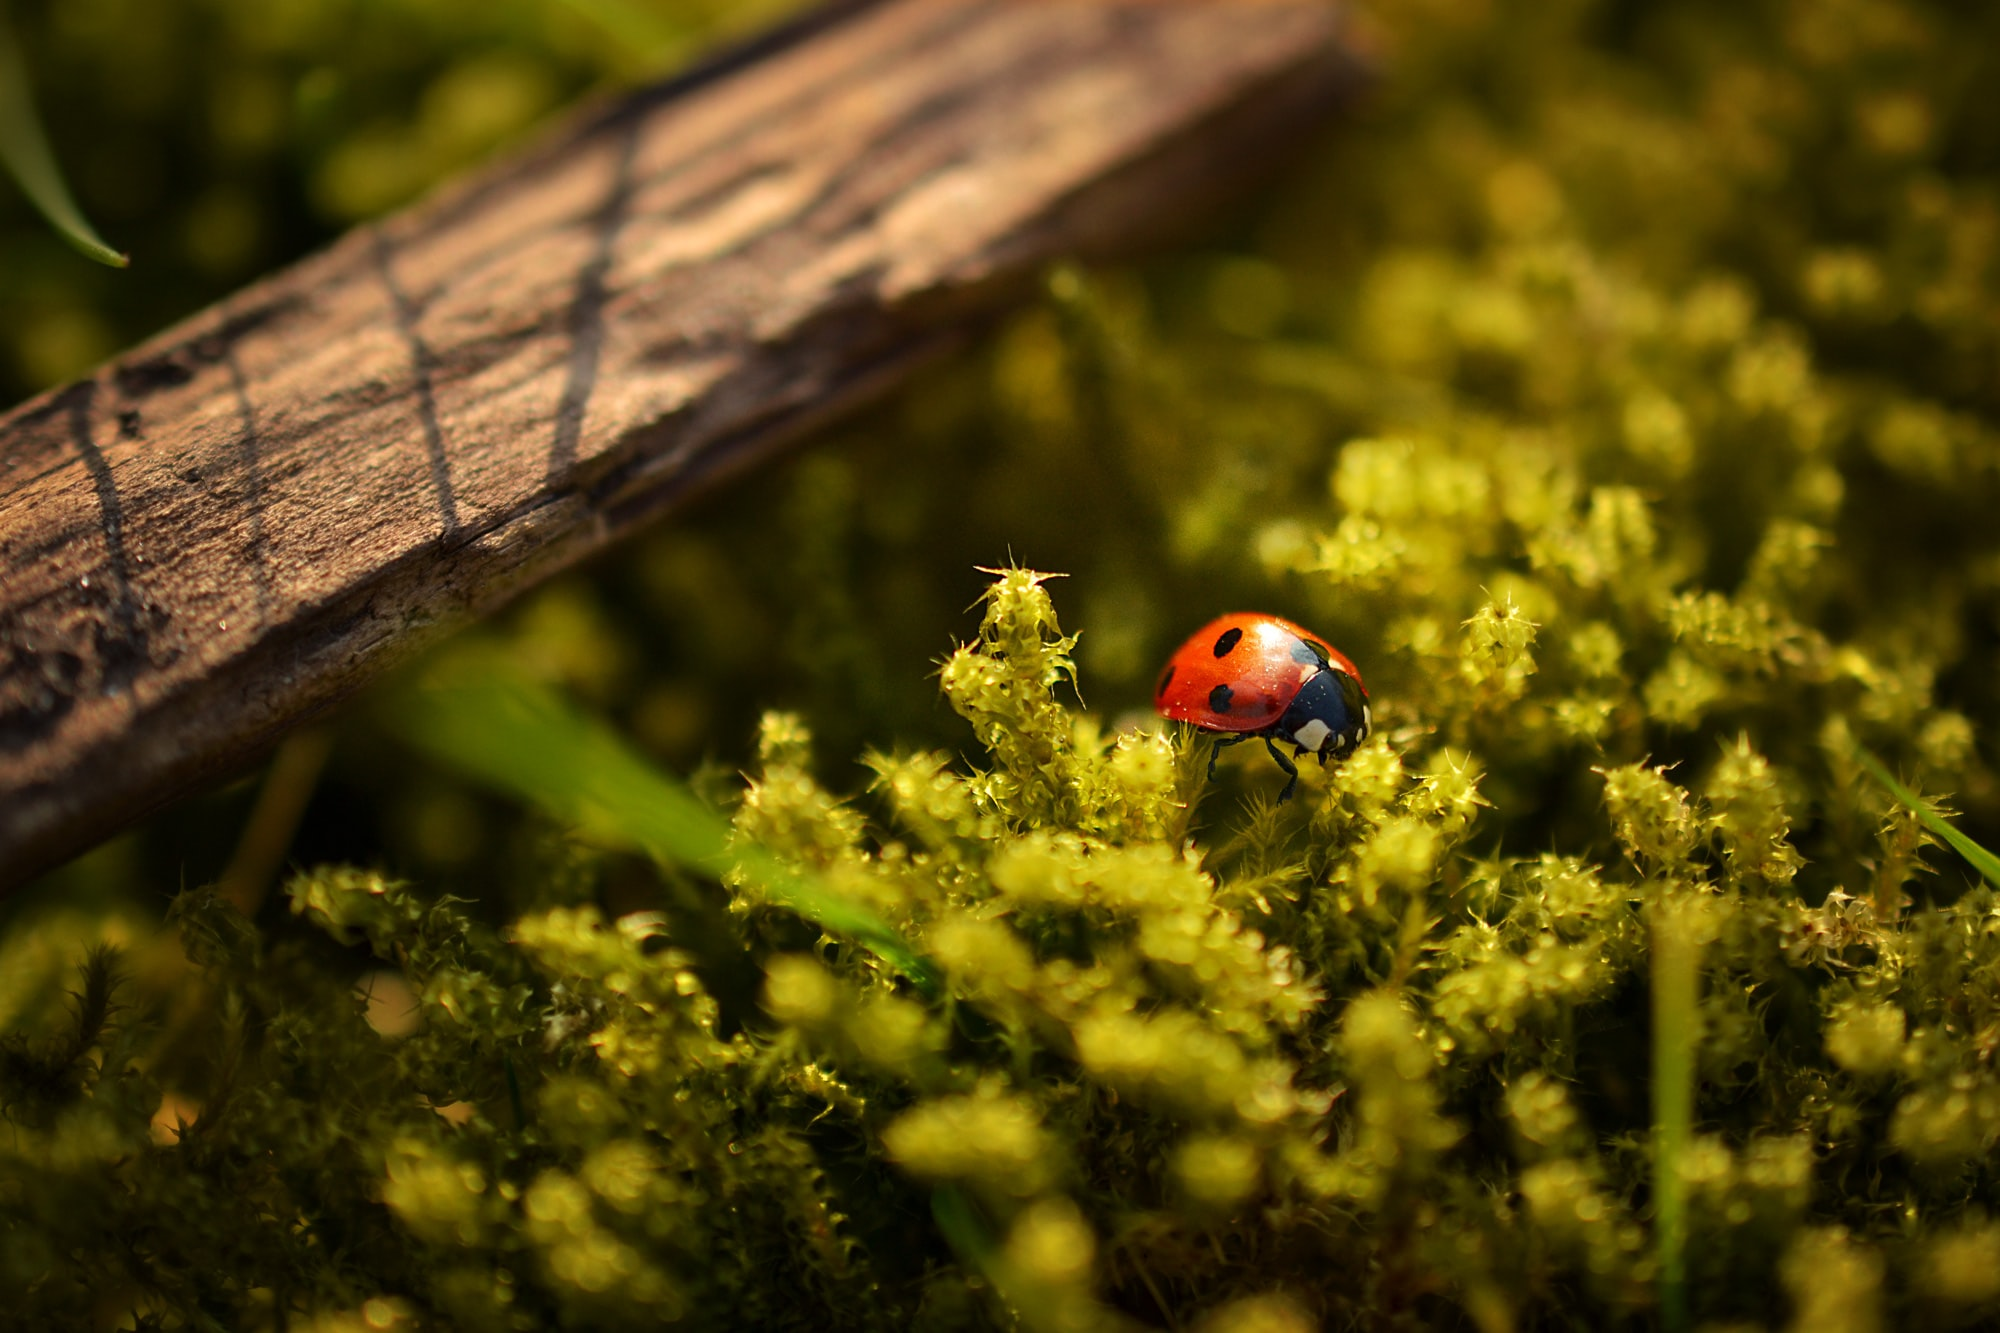 closeup photography of ladybug perched on green leafed plant